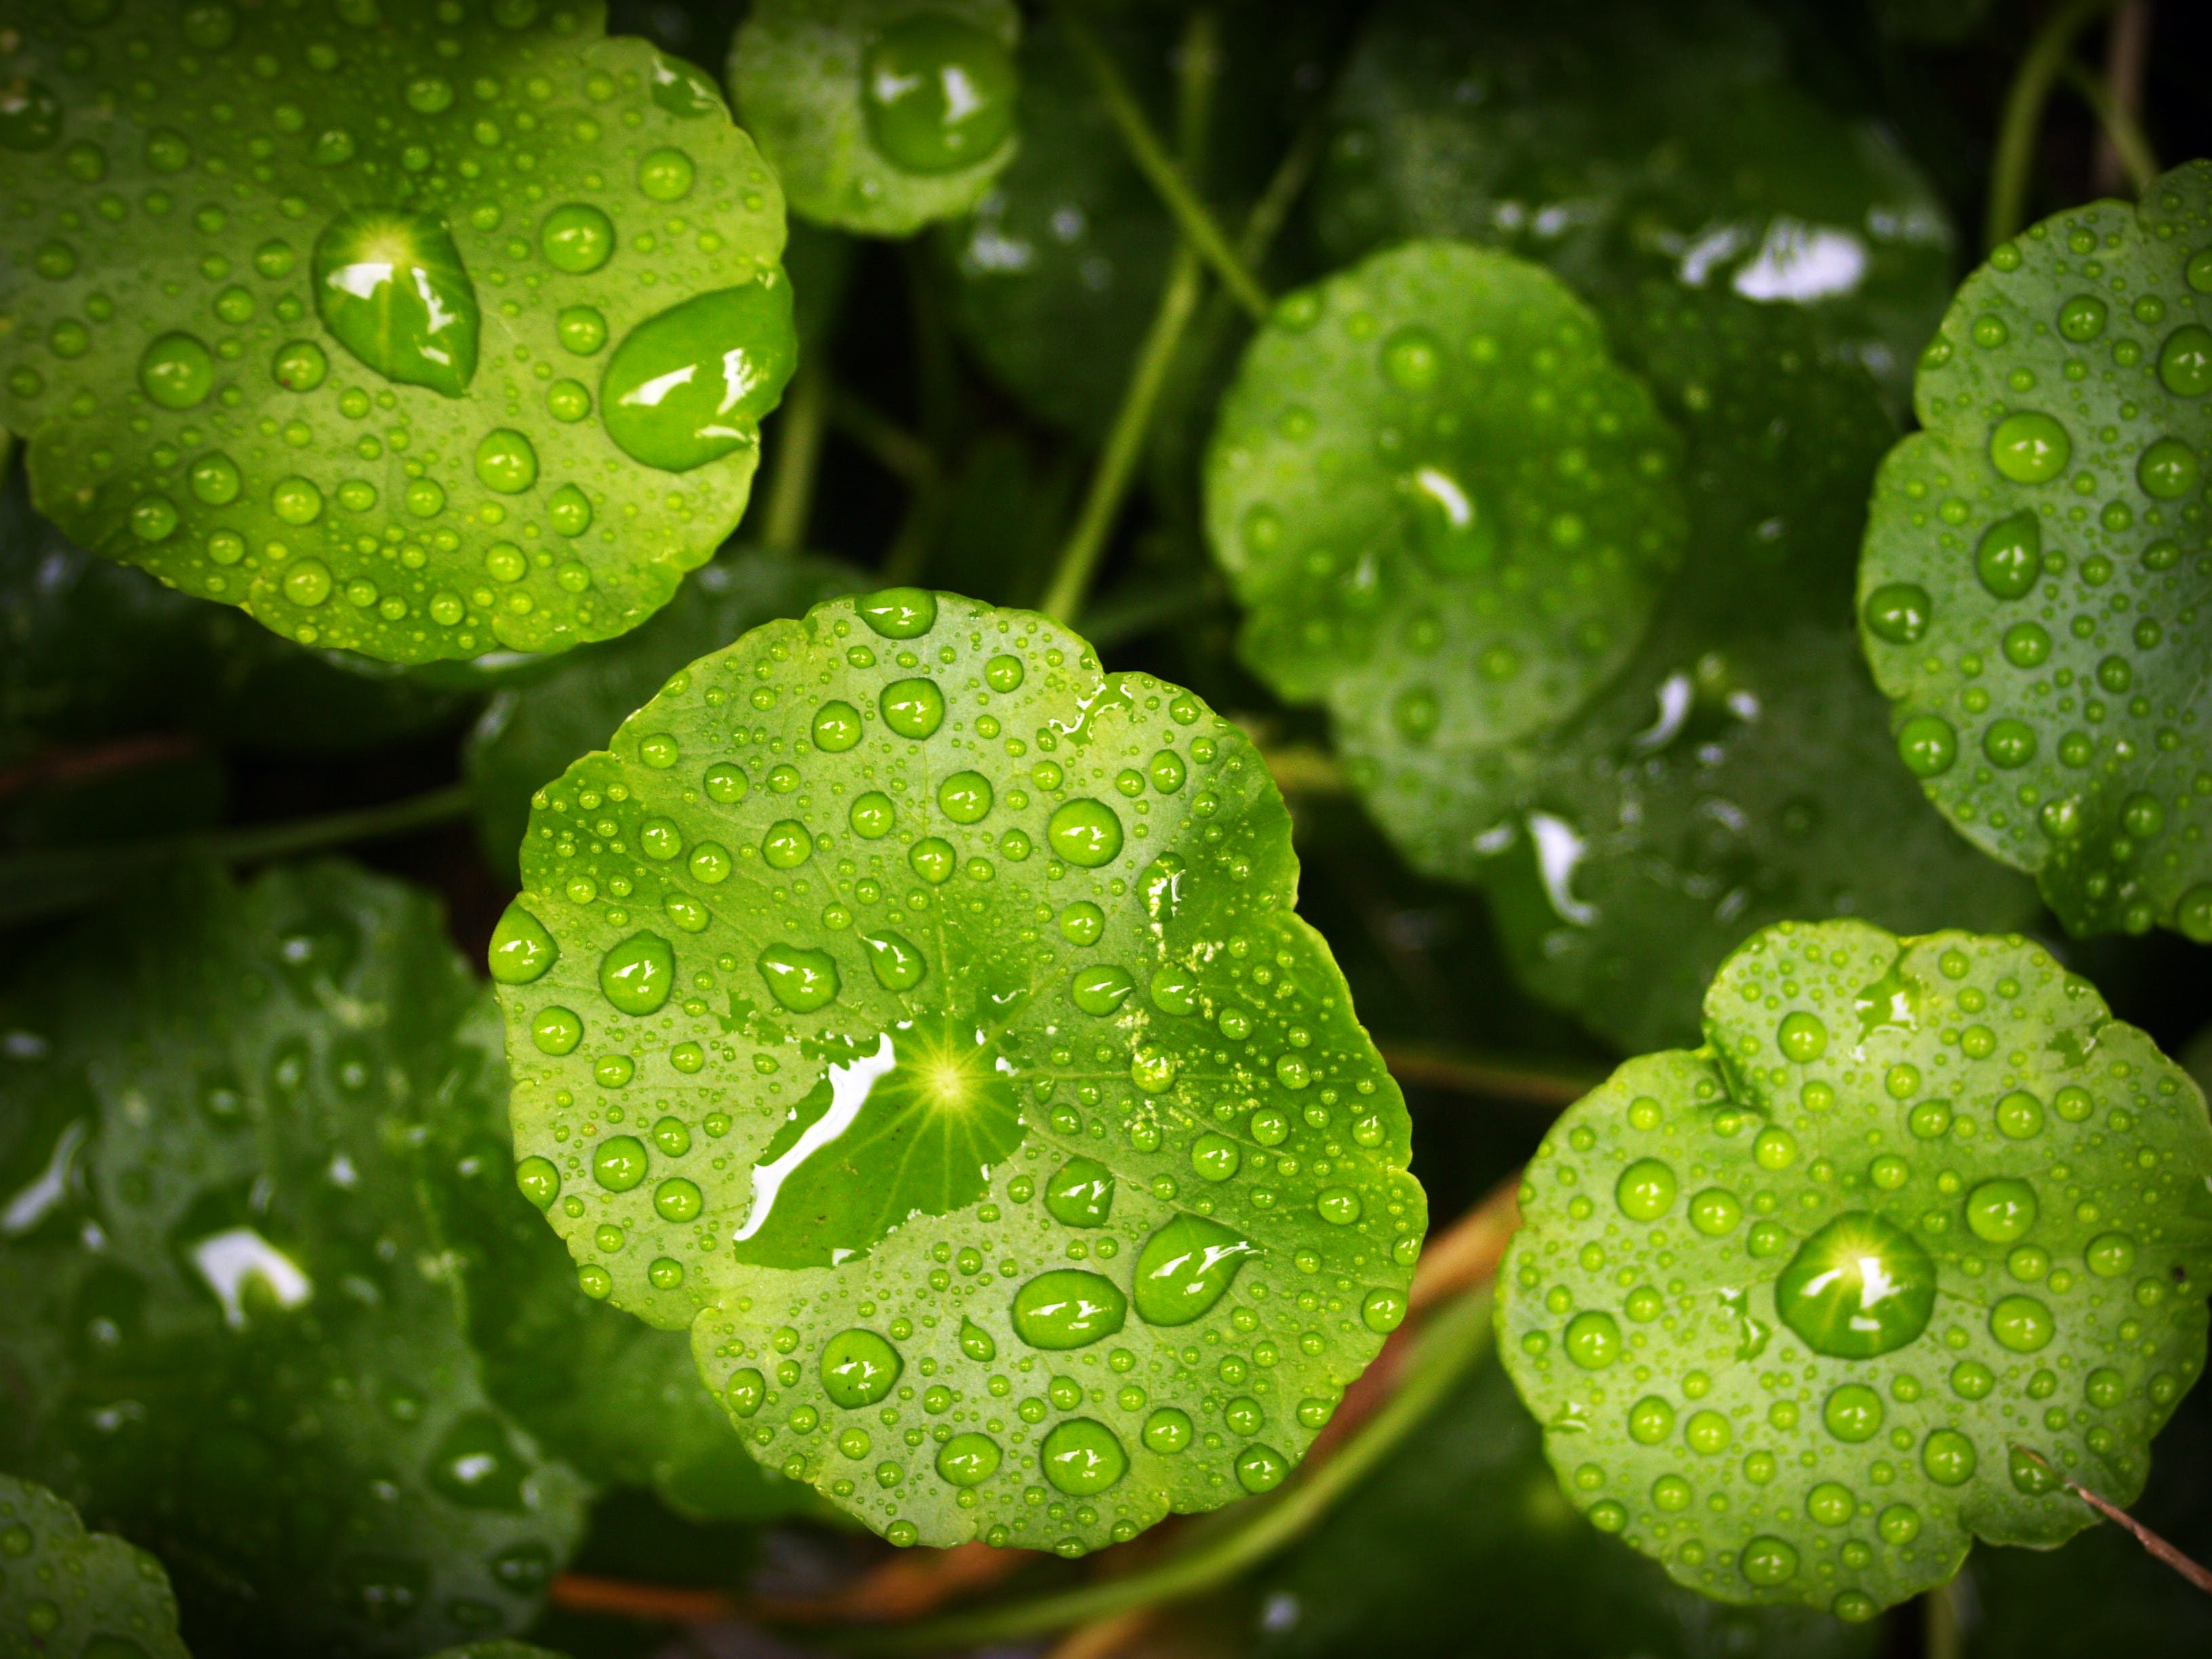 Water Droplet on Green Leafed Plant